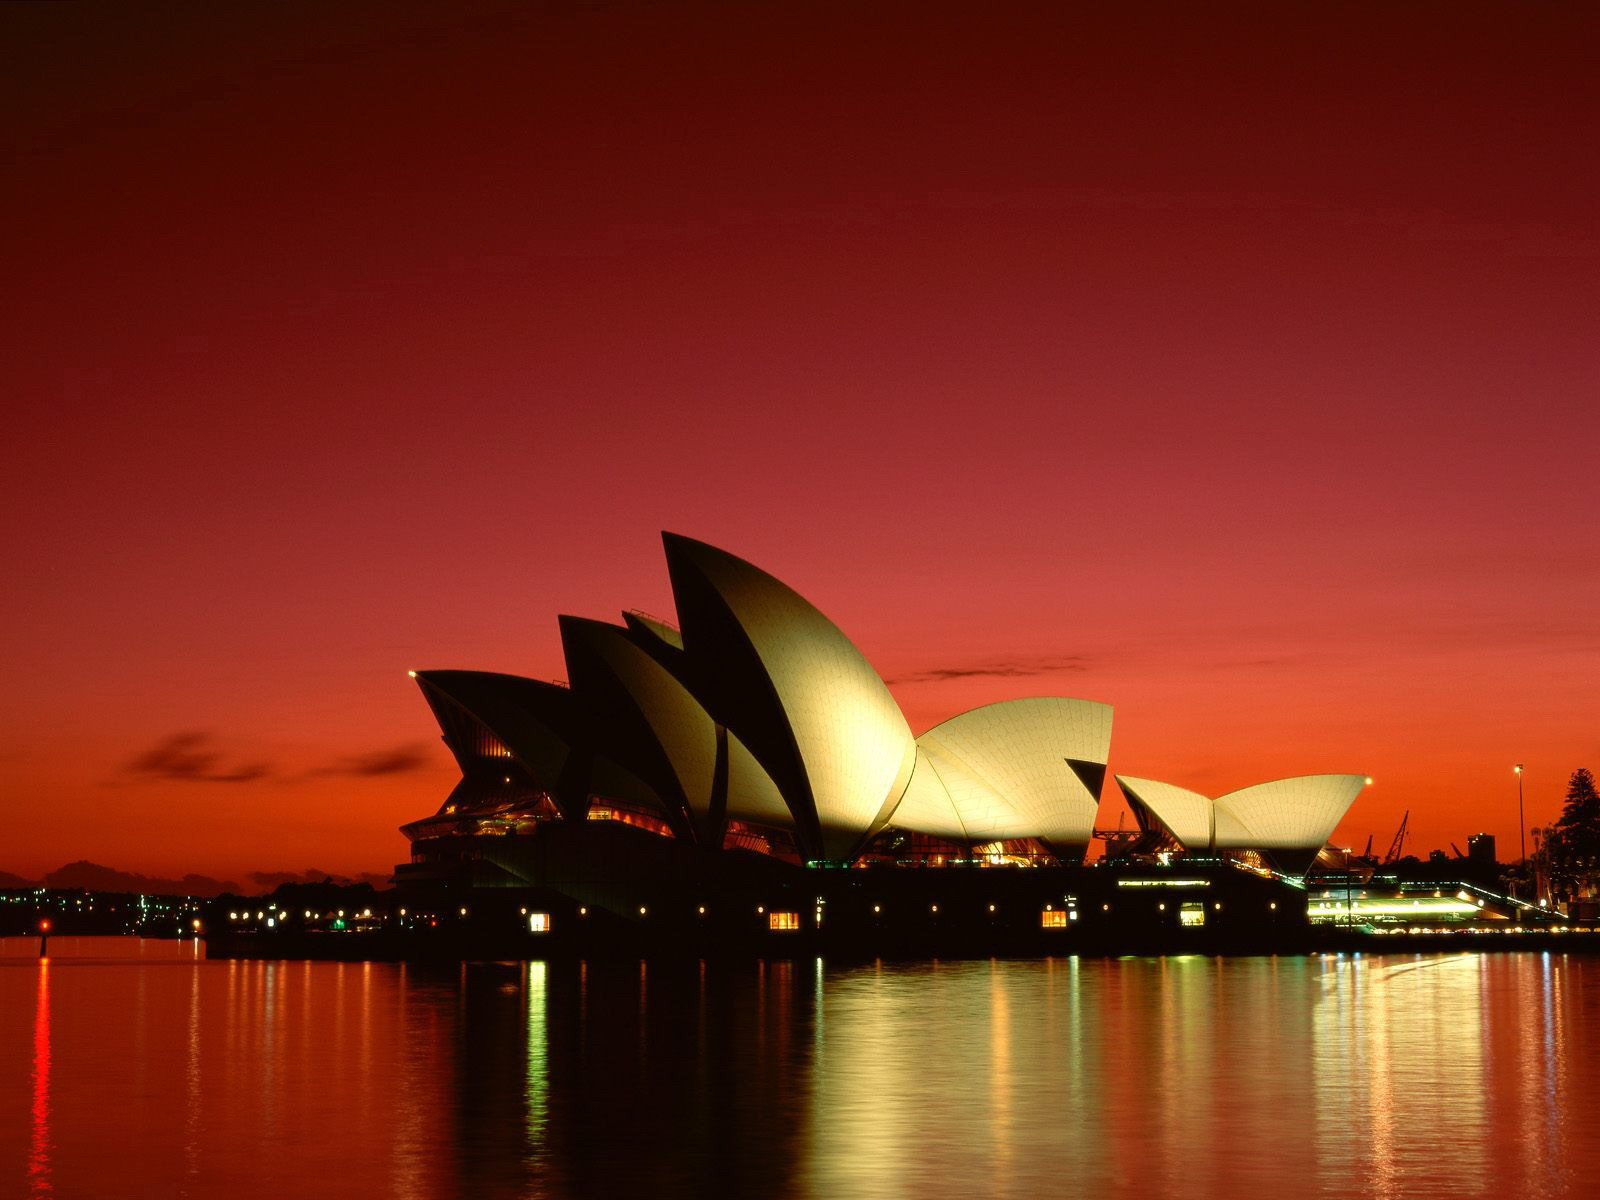 Sydney Wallpapers Sydney Backgrounds Sydney Images  - sydney opera house australia wallpapers